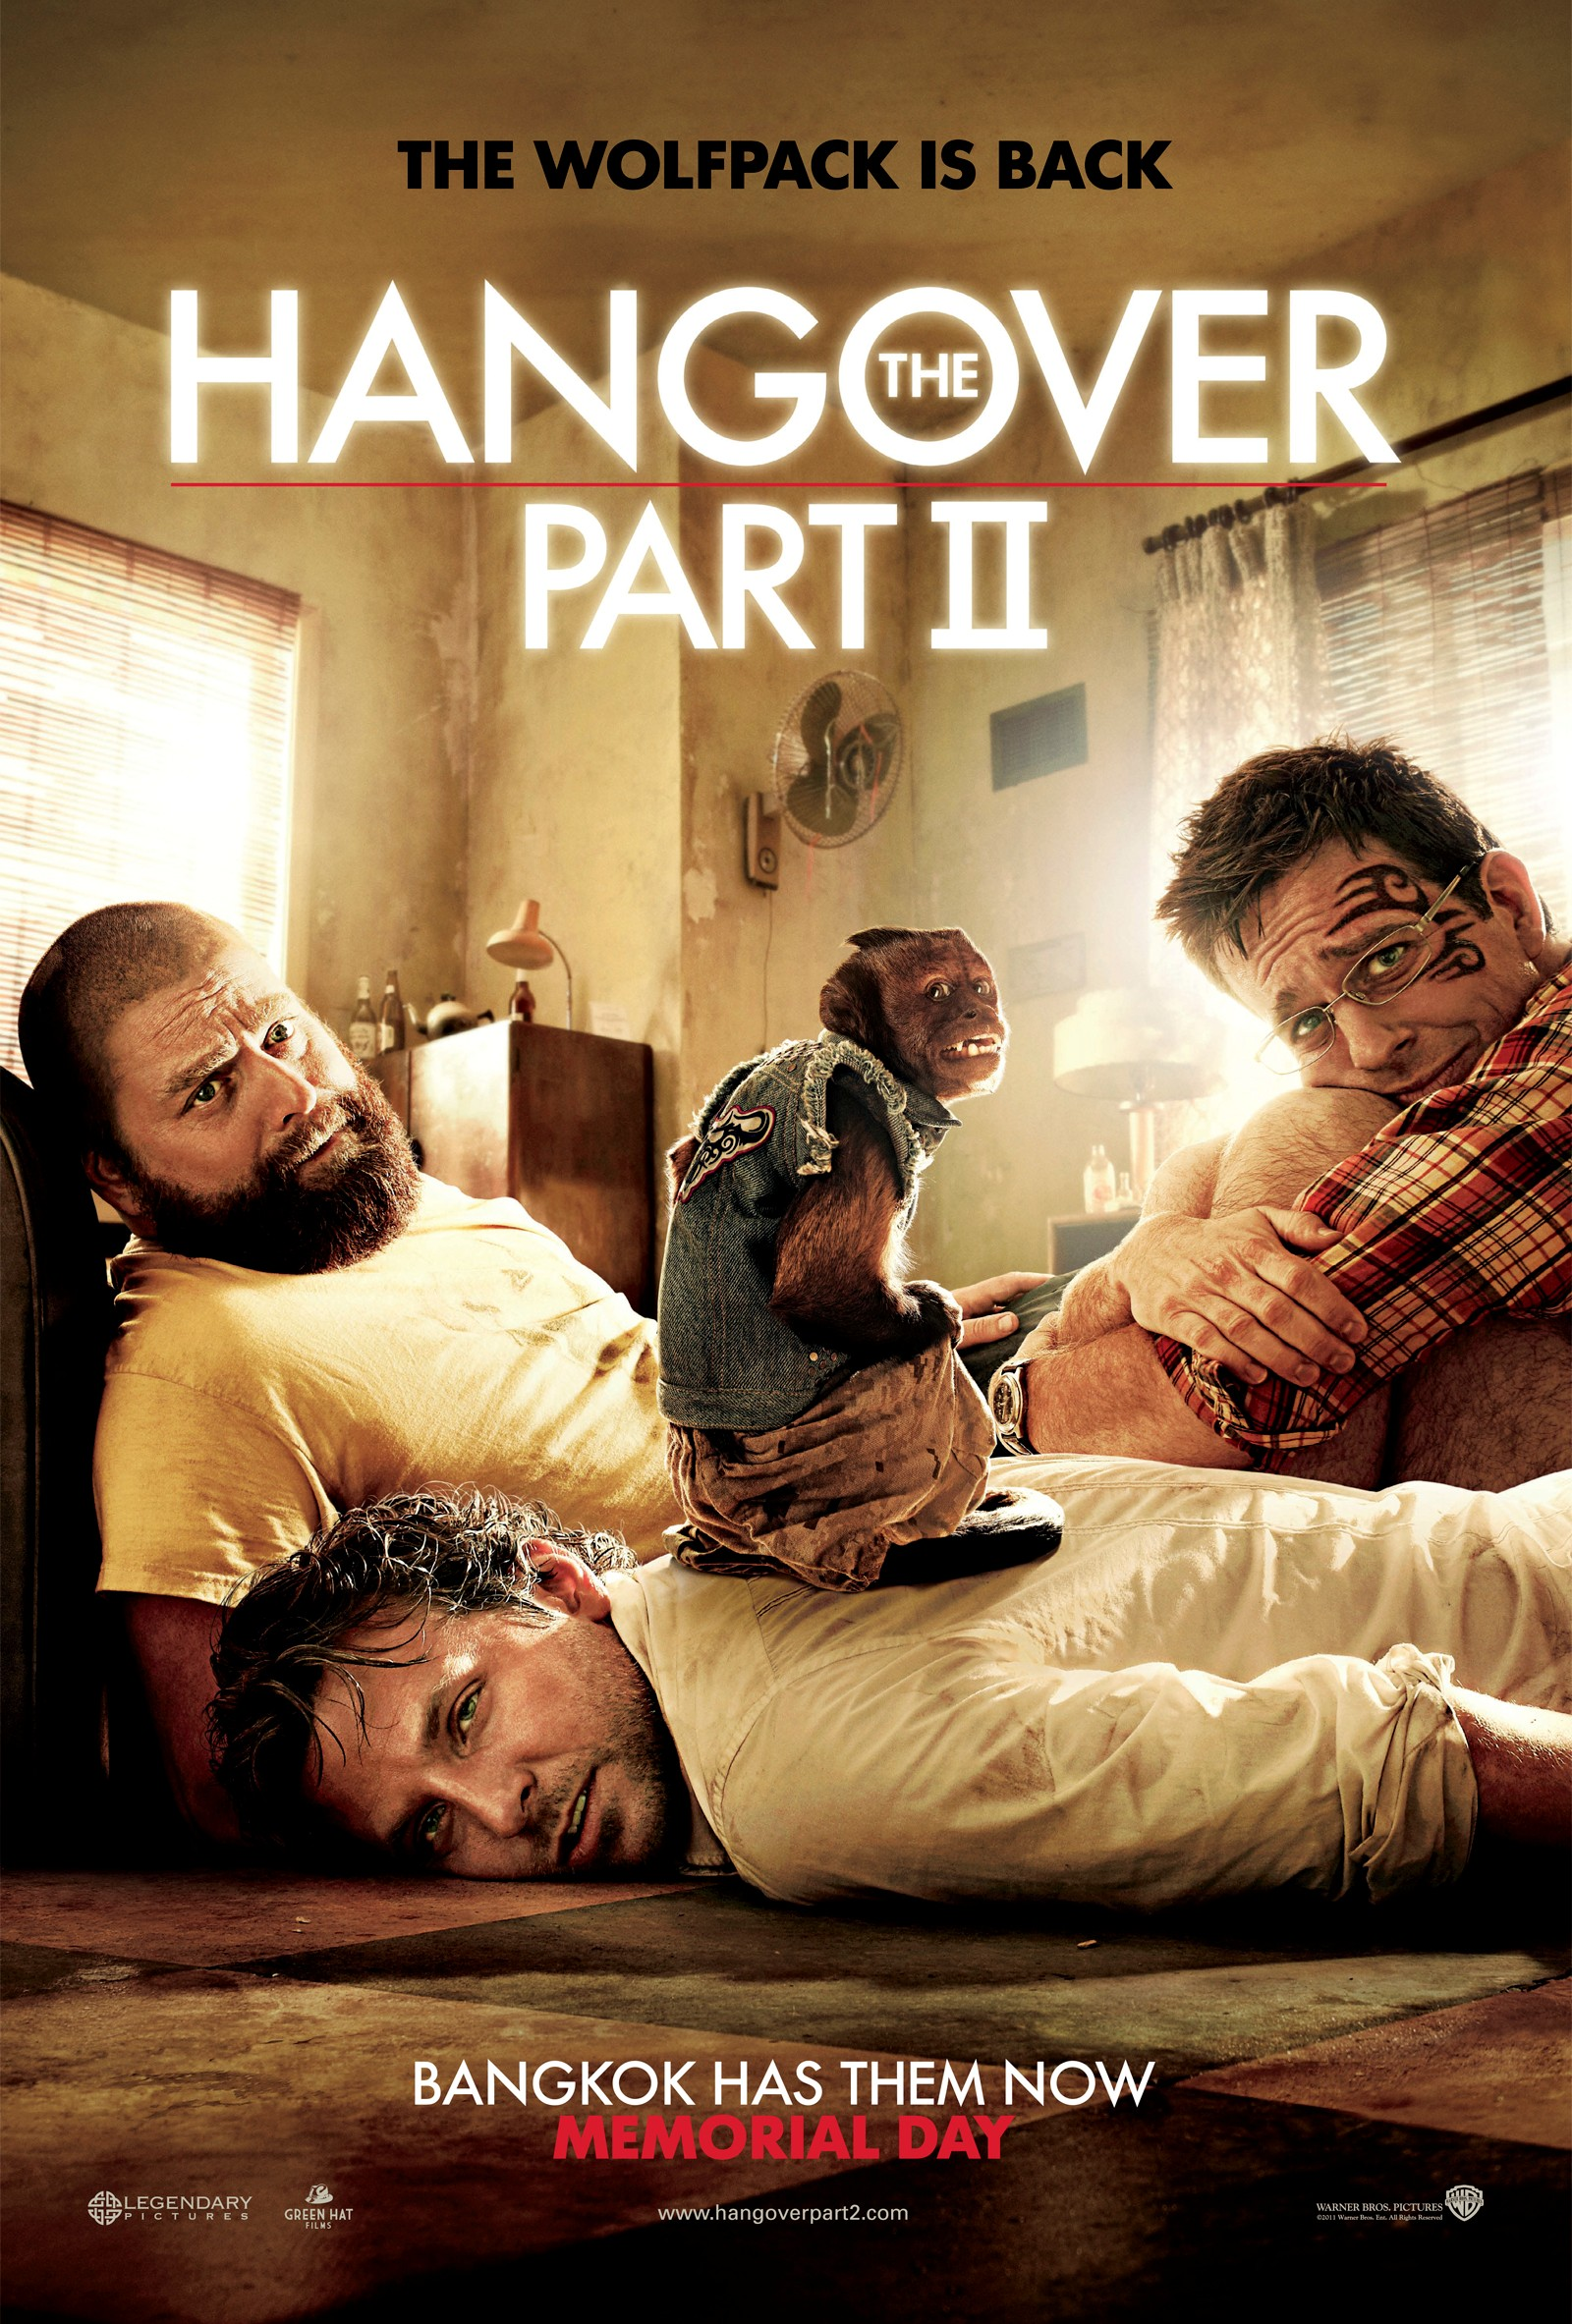 The hangover part ii 2017 brrip 720p x264 mgb